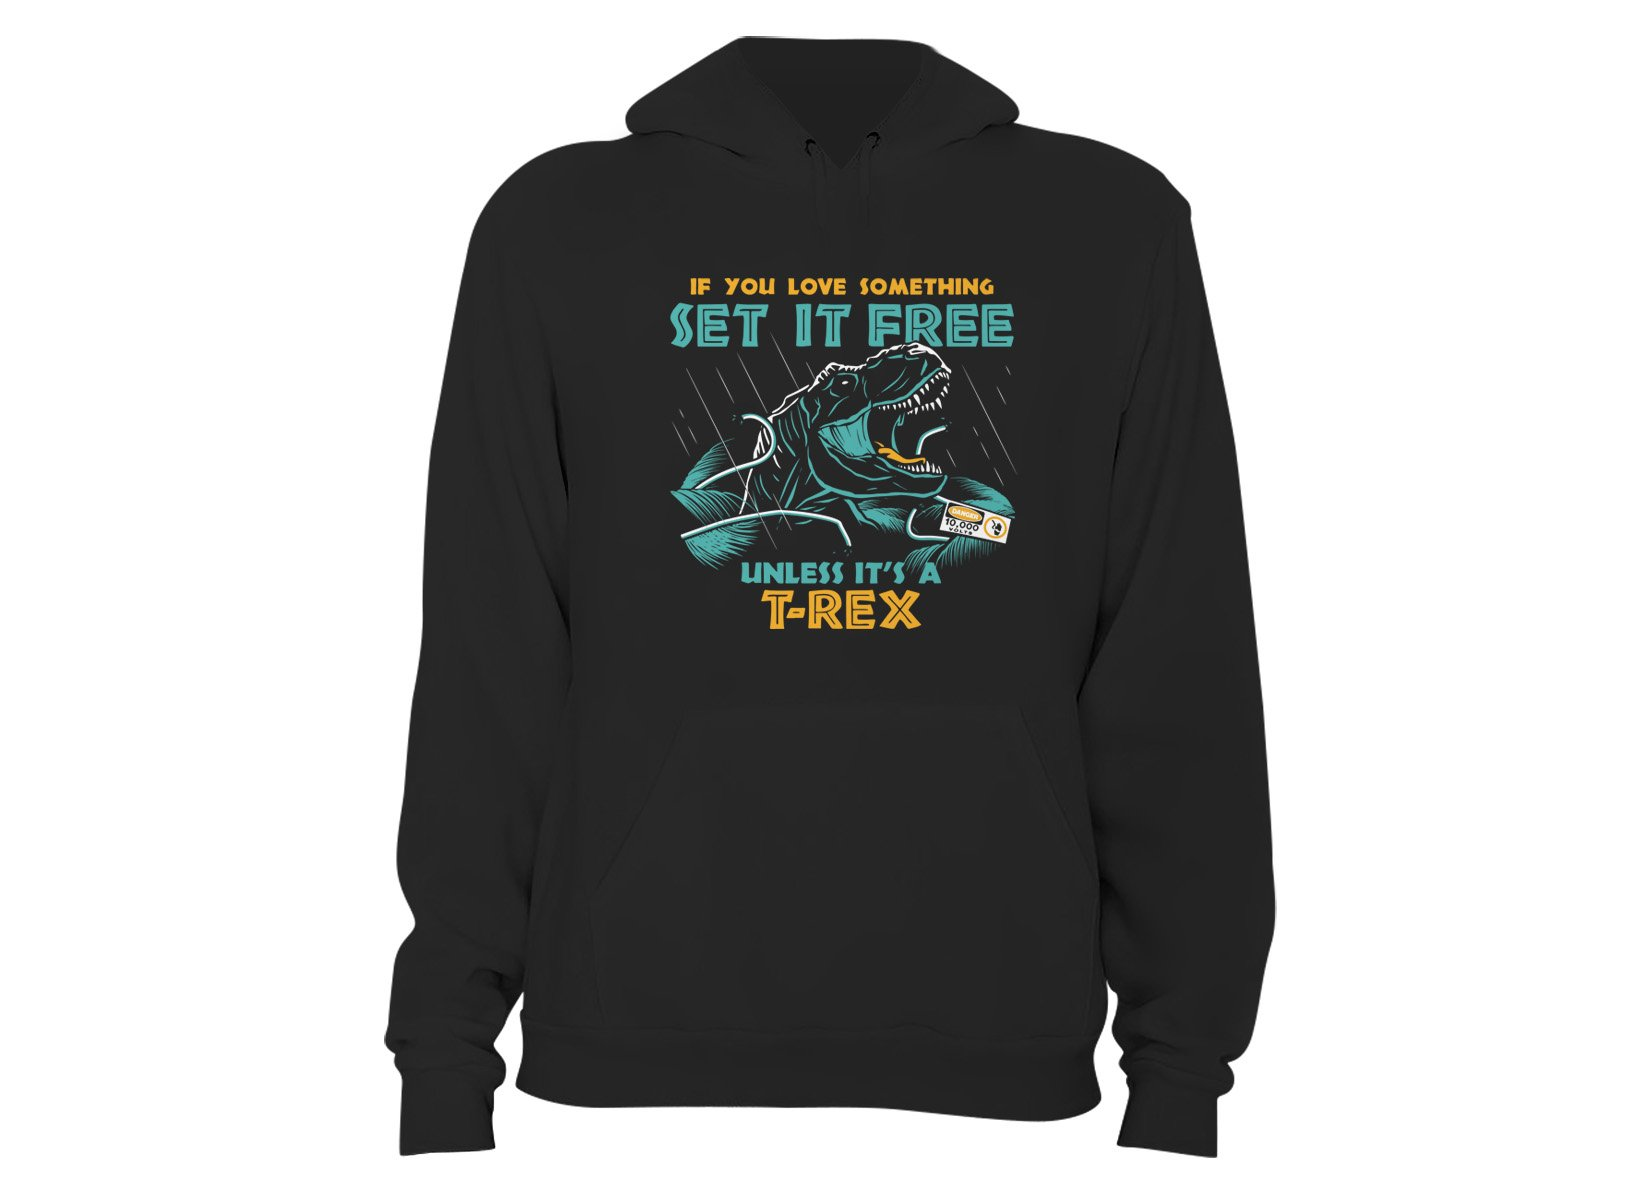 If You Love Something Set It Free on Hoodie